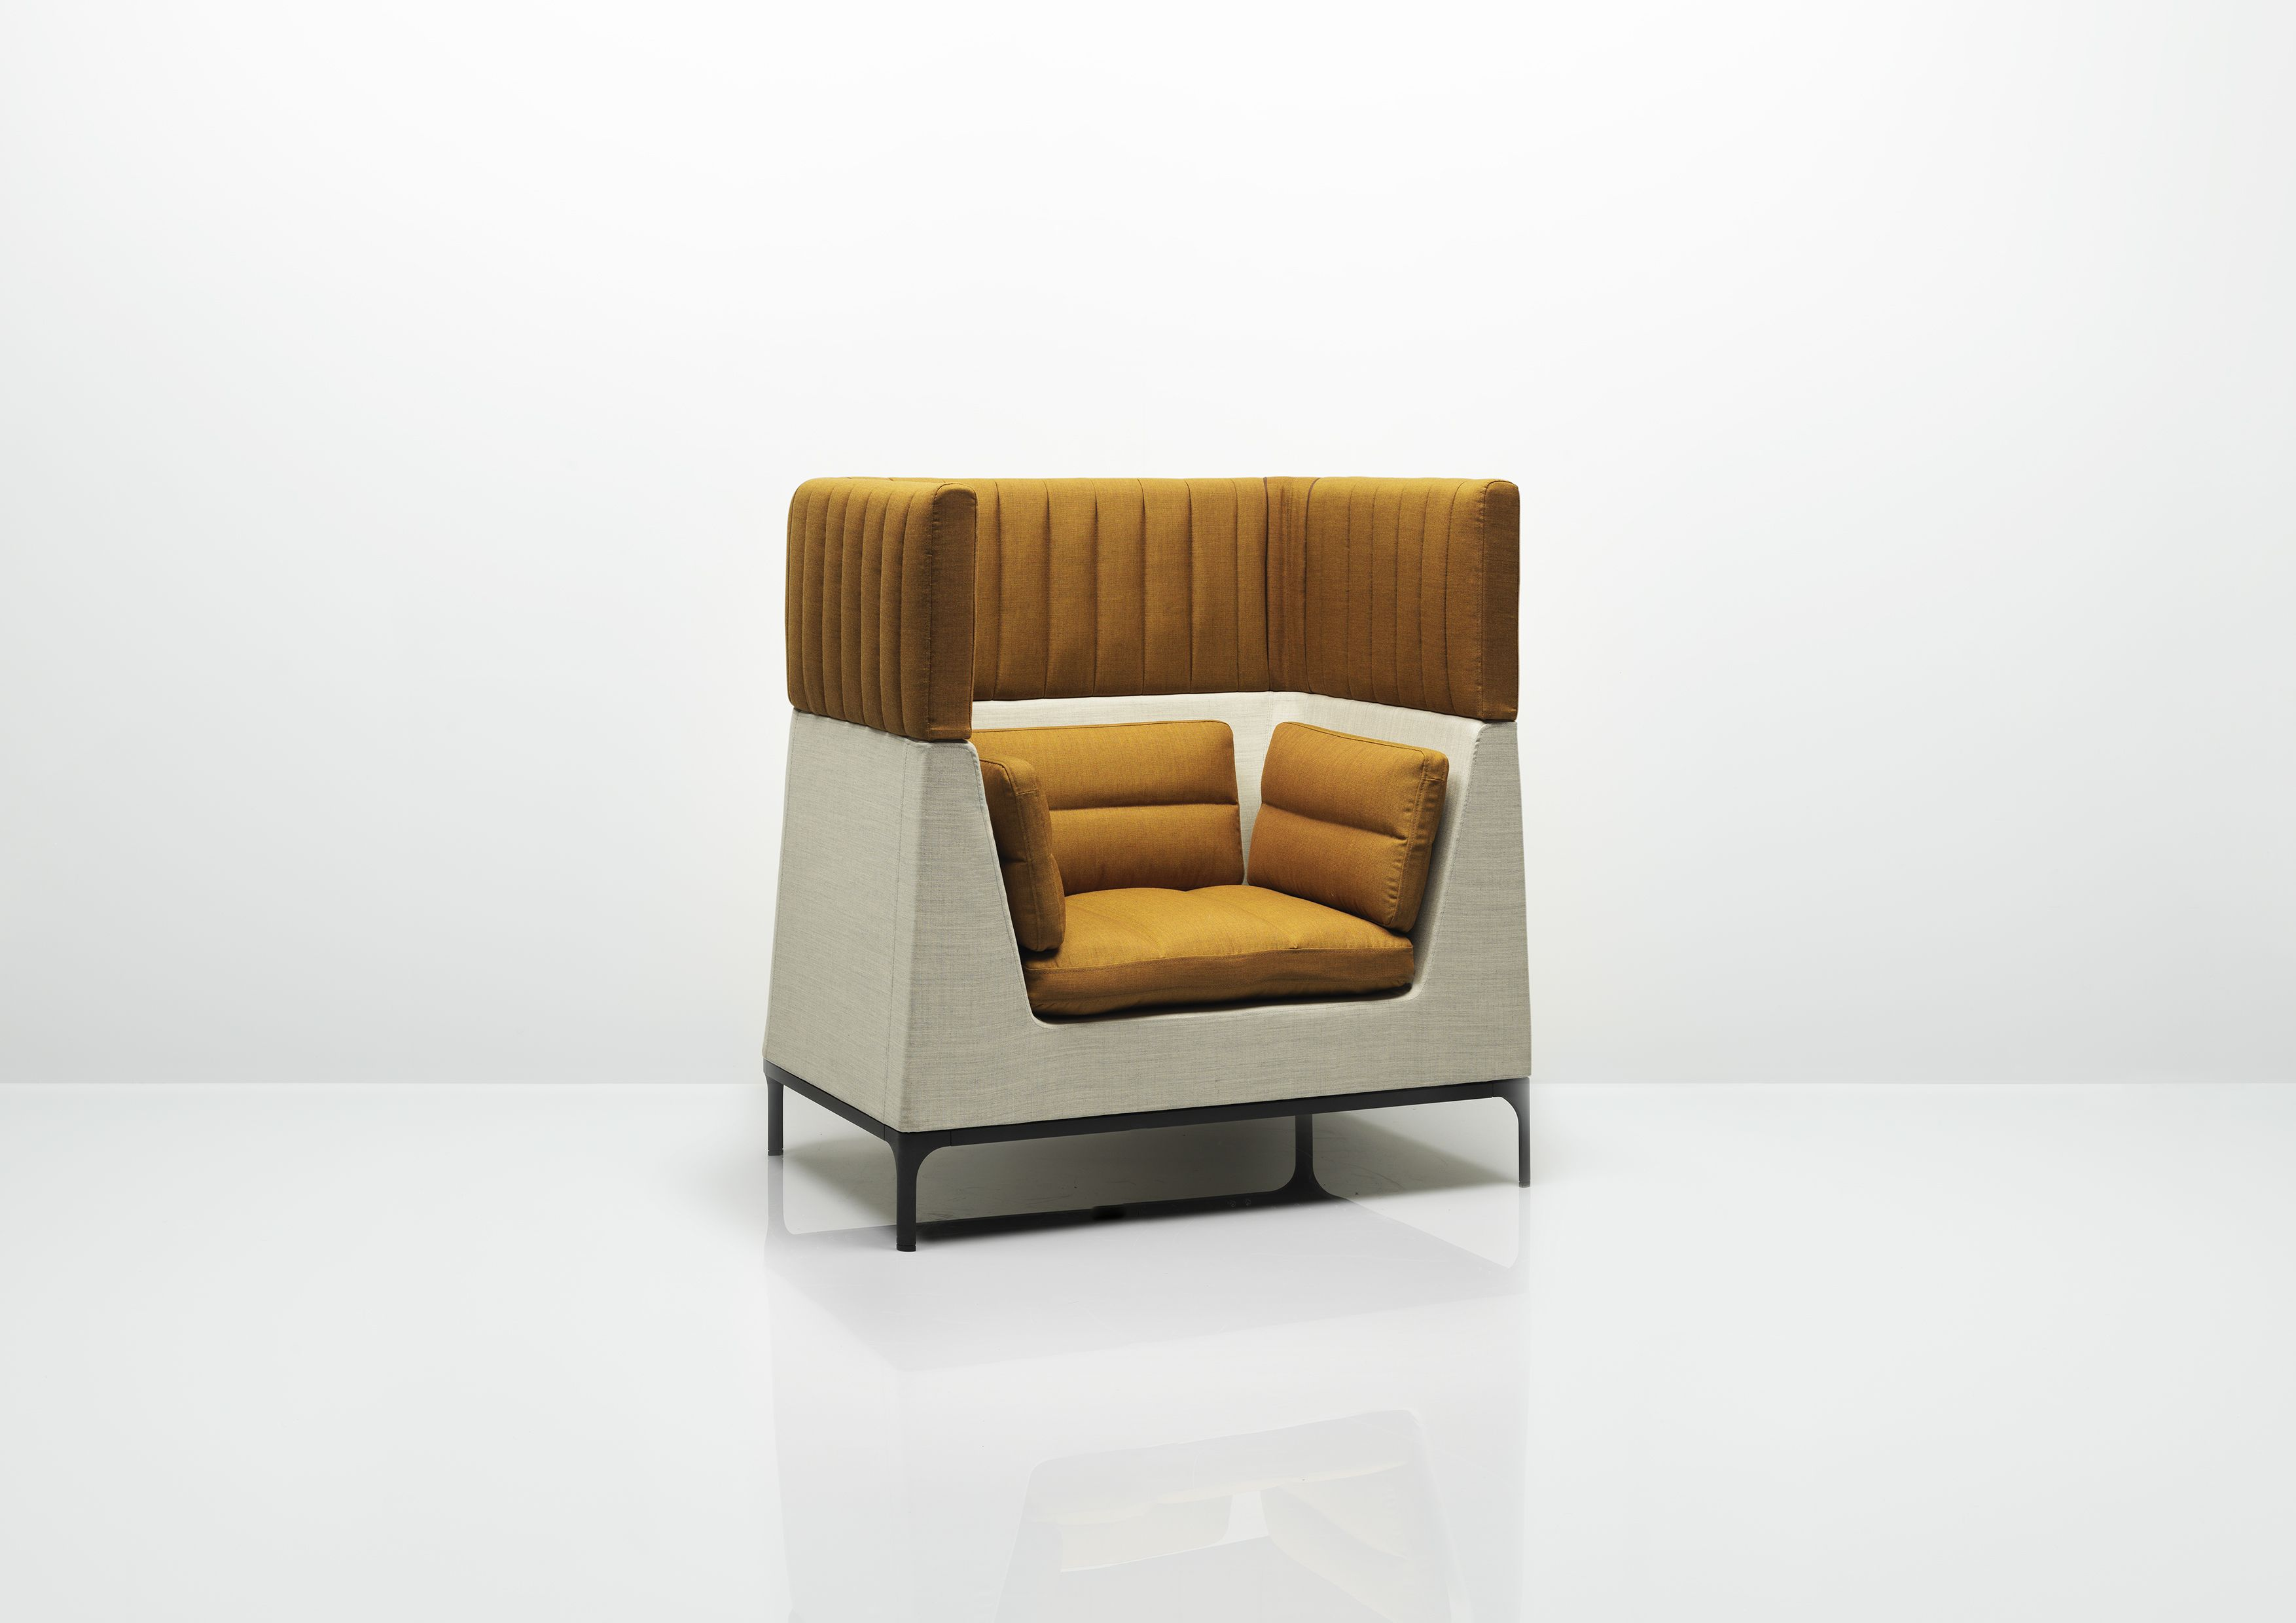 Single Seat Armchair With Headrest Designed By Mark Gabbertas, Haven  Creates Personal Privacy Within A